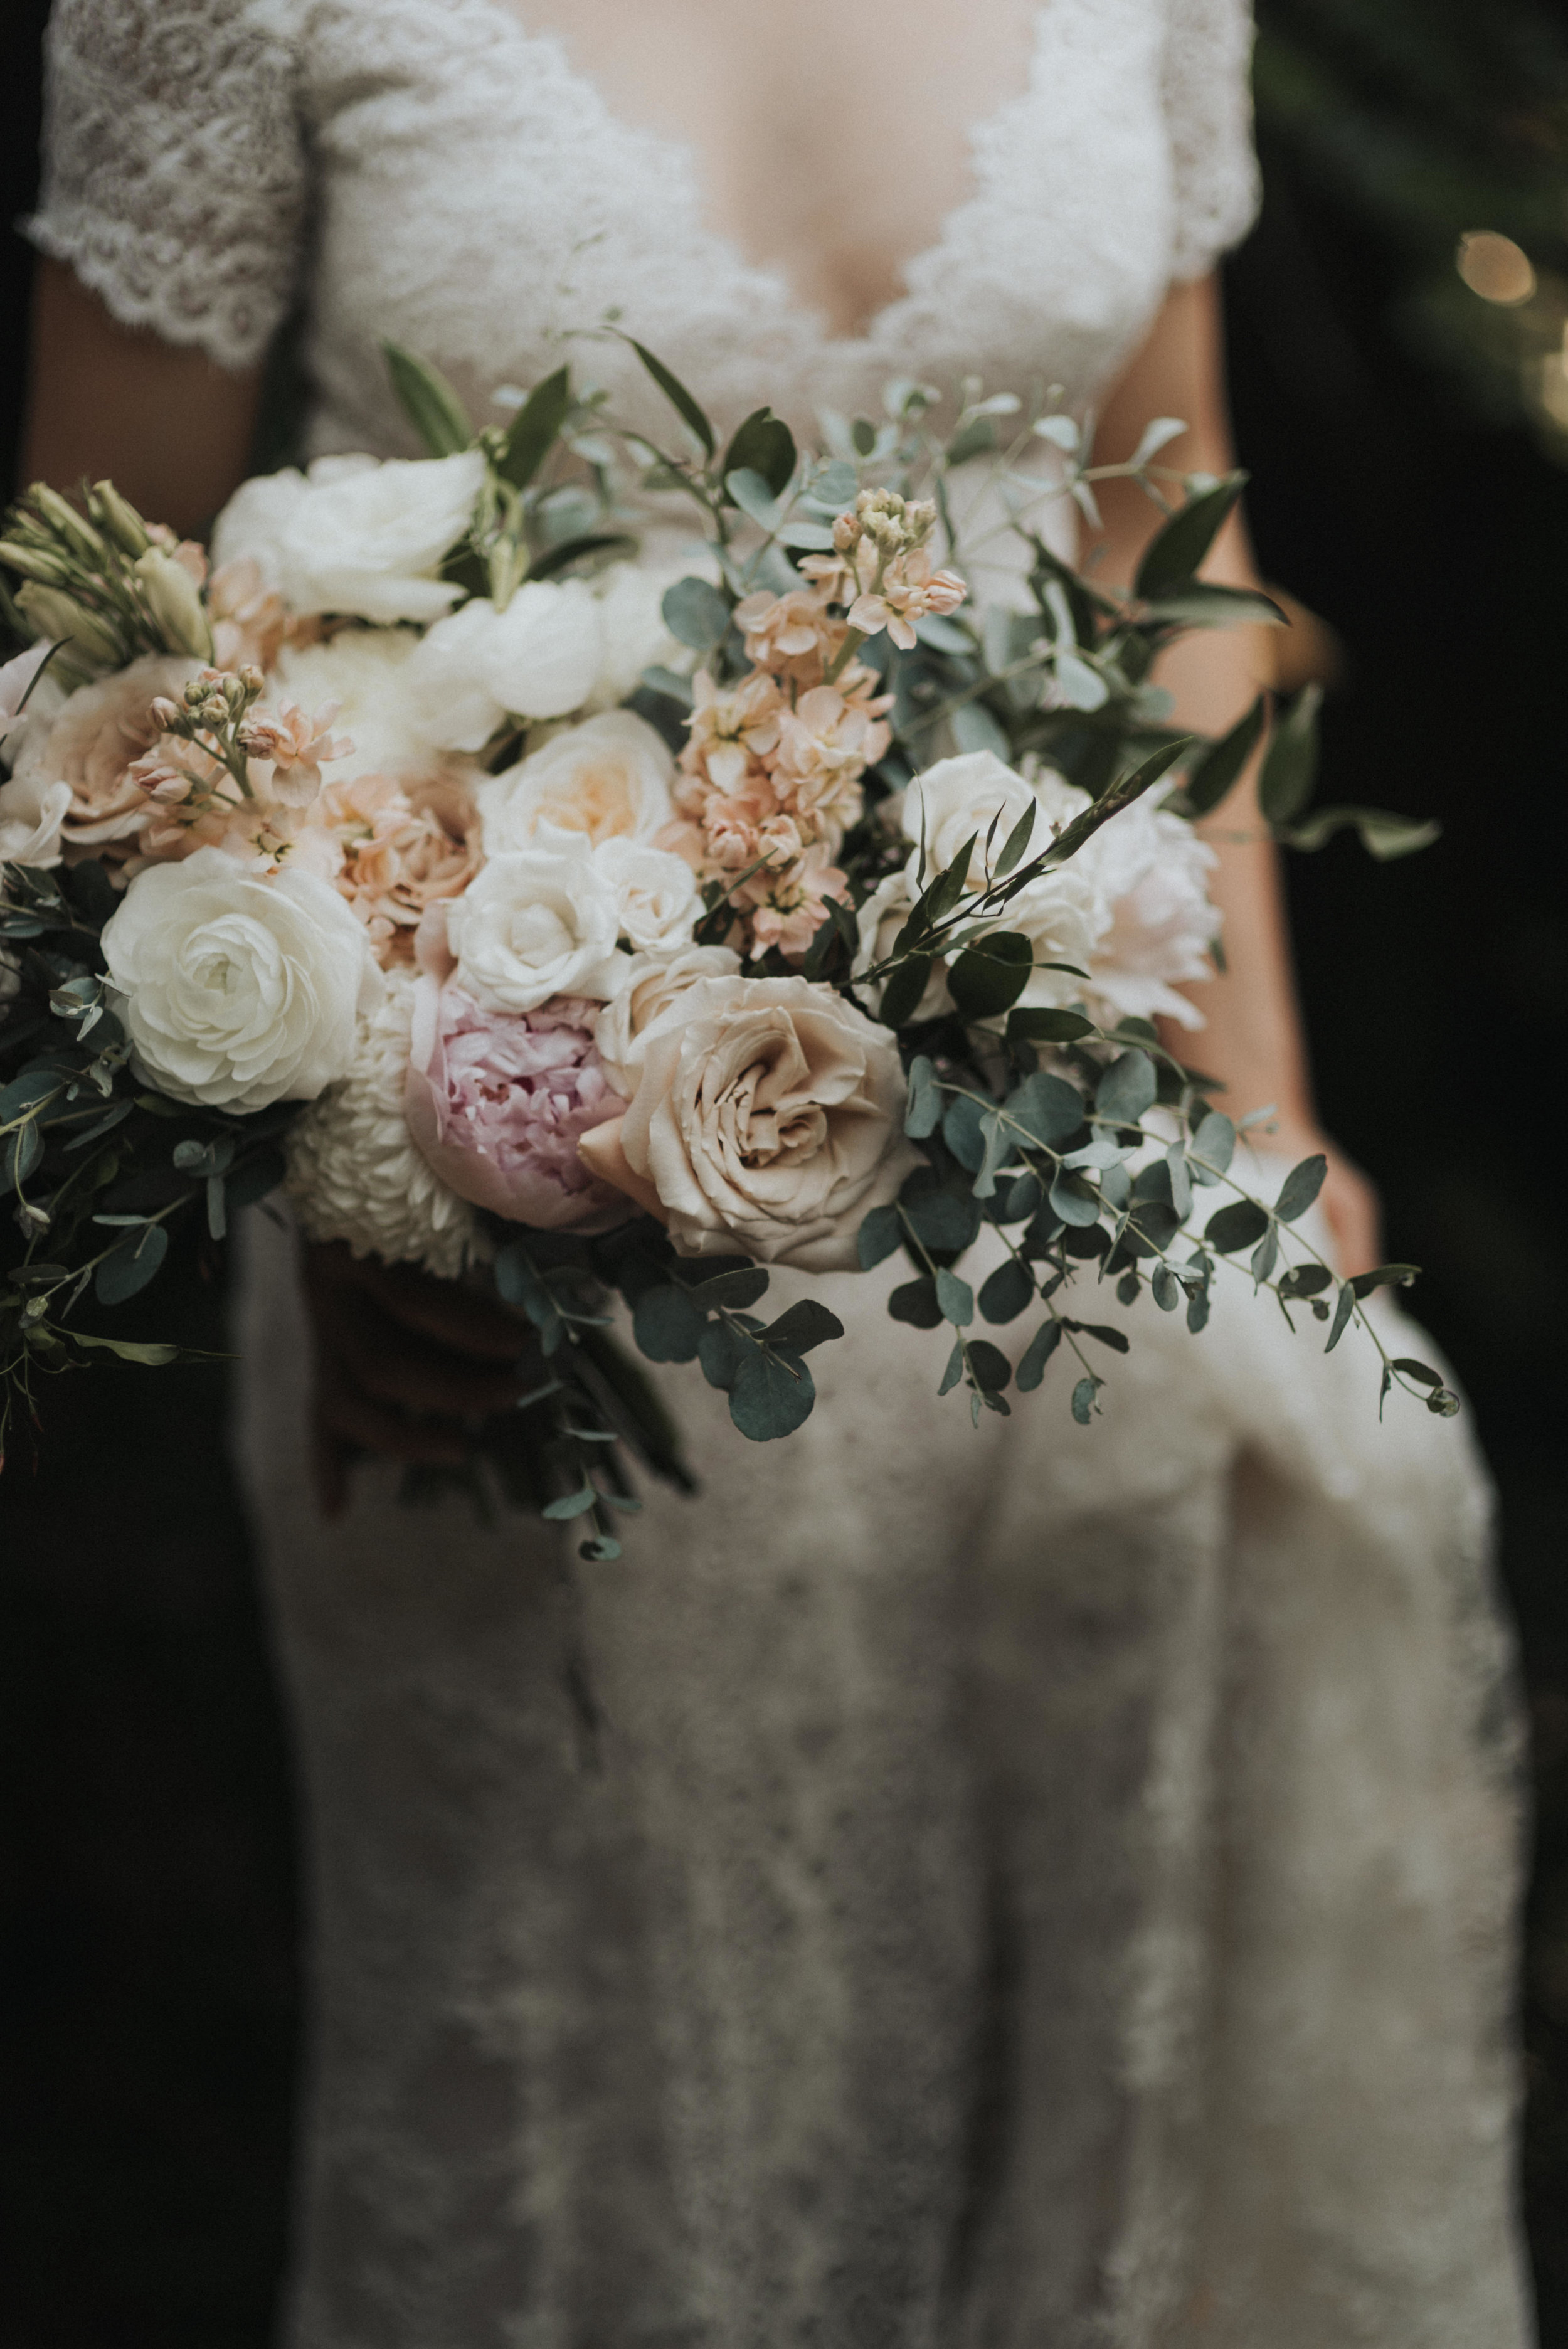 Southern Fete, Southern Wedding, Root Floral Design, White, Blush and Green Flower Bouquet